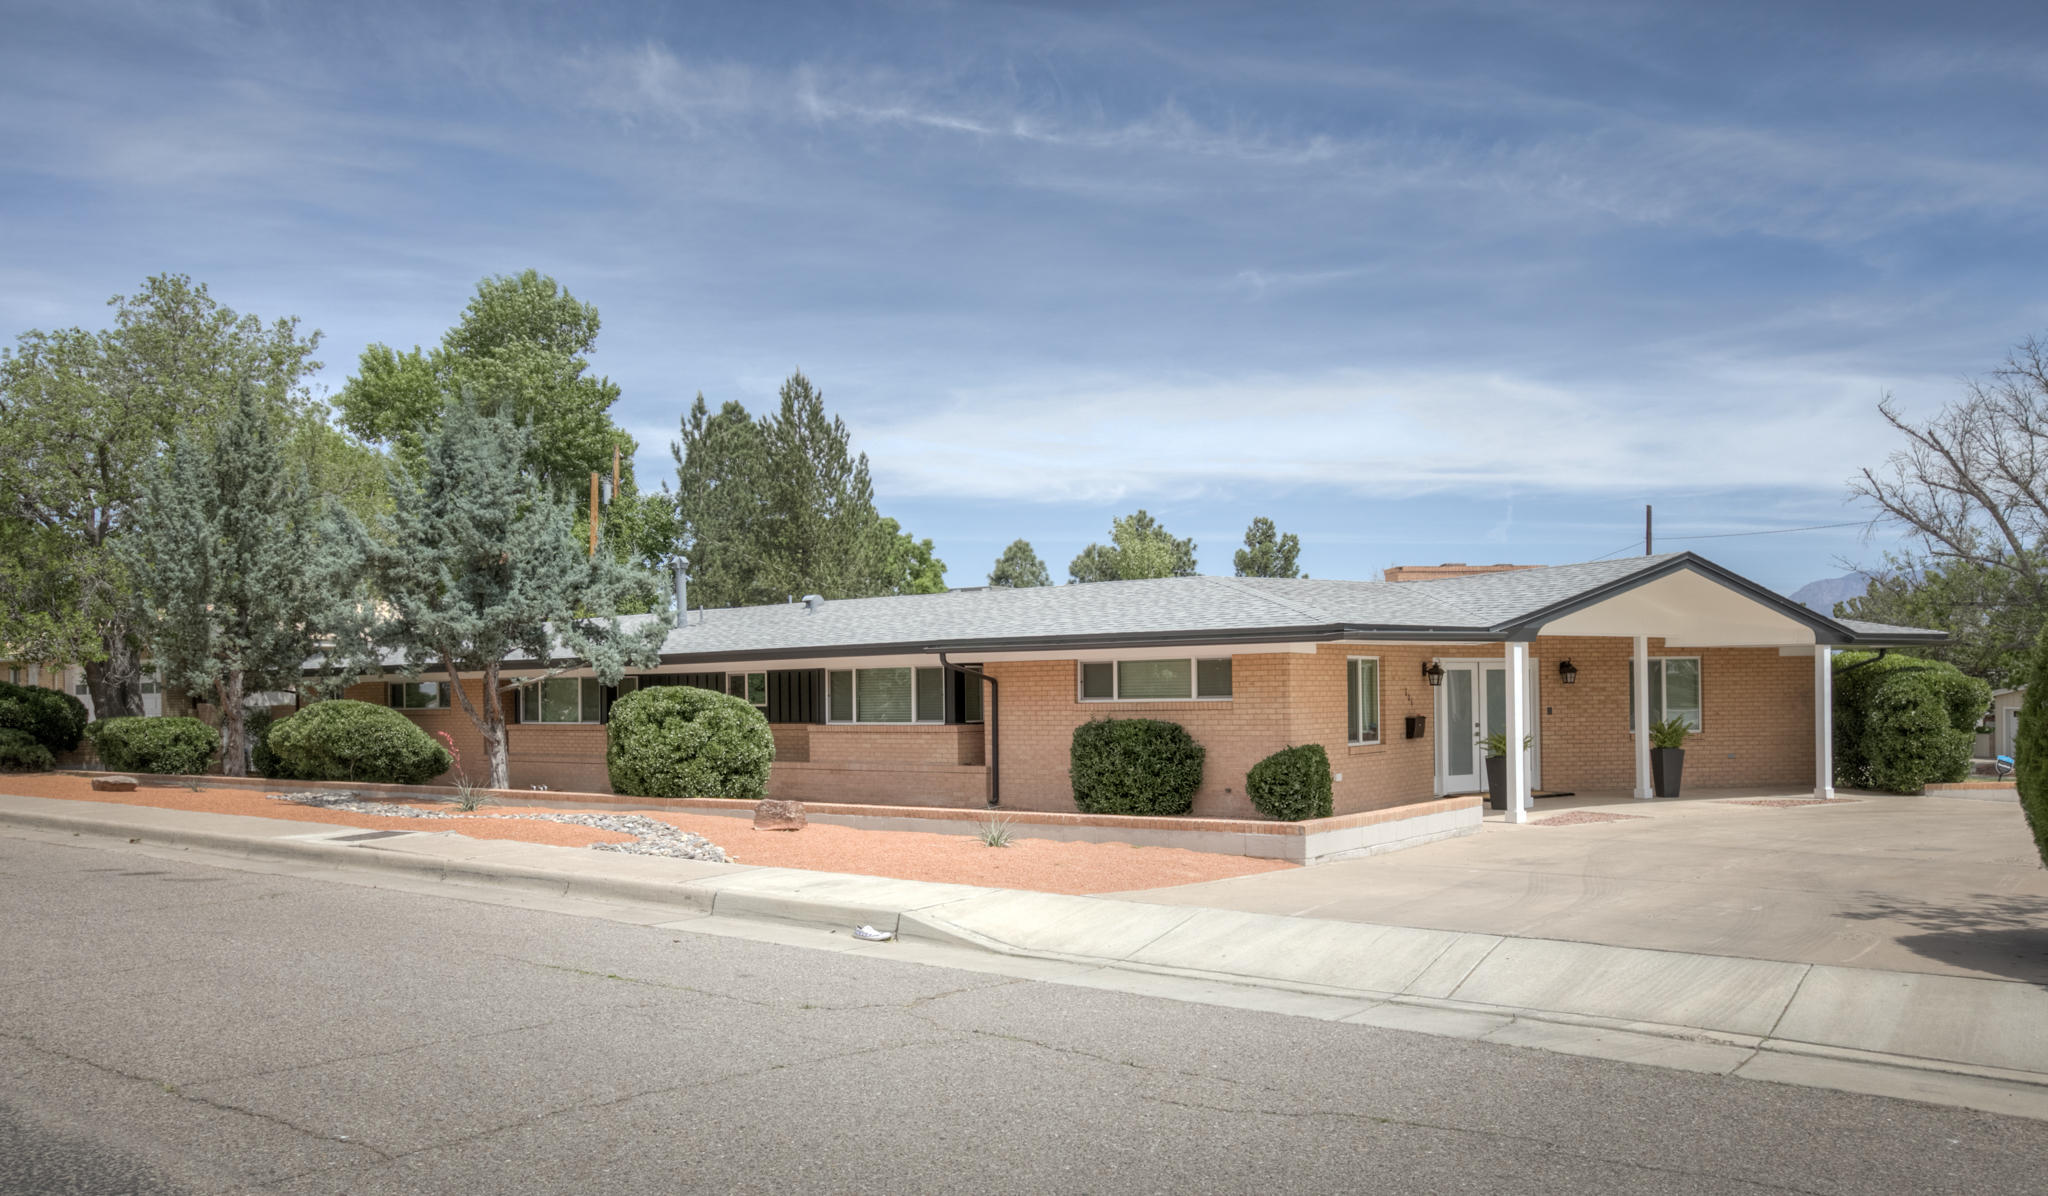 606 LOMA LINDA Place SE Property Photo - Albuquerque, NM real estate listing